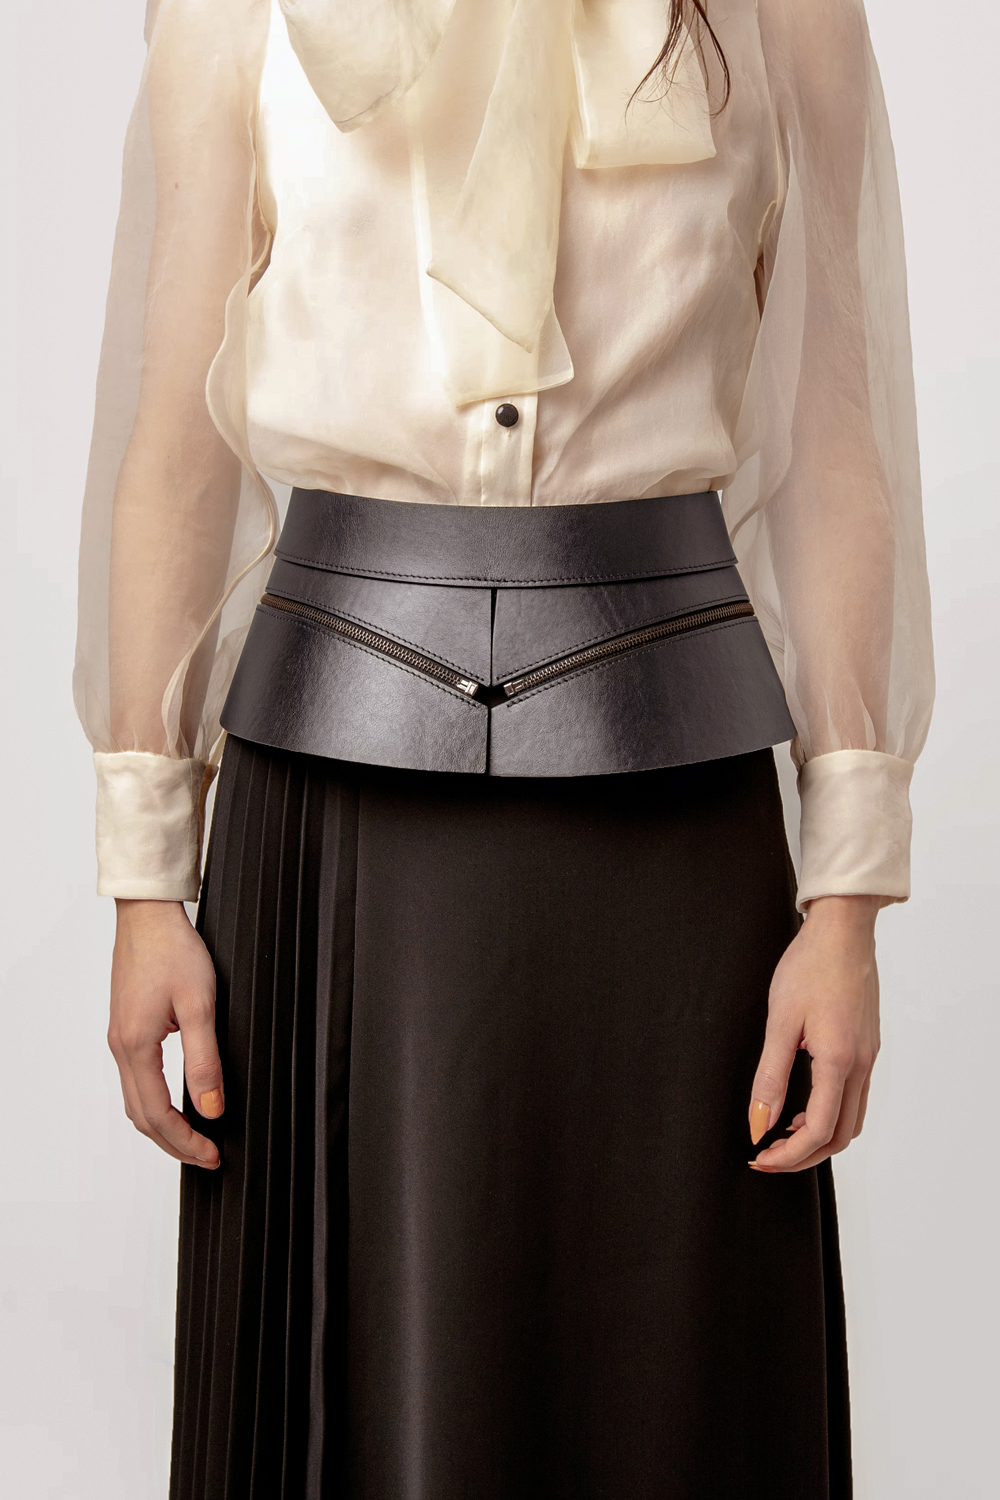 a close-up picture of a woman wearing statement belt